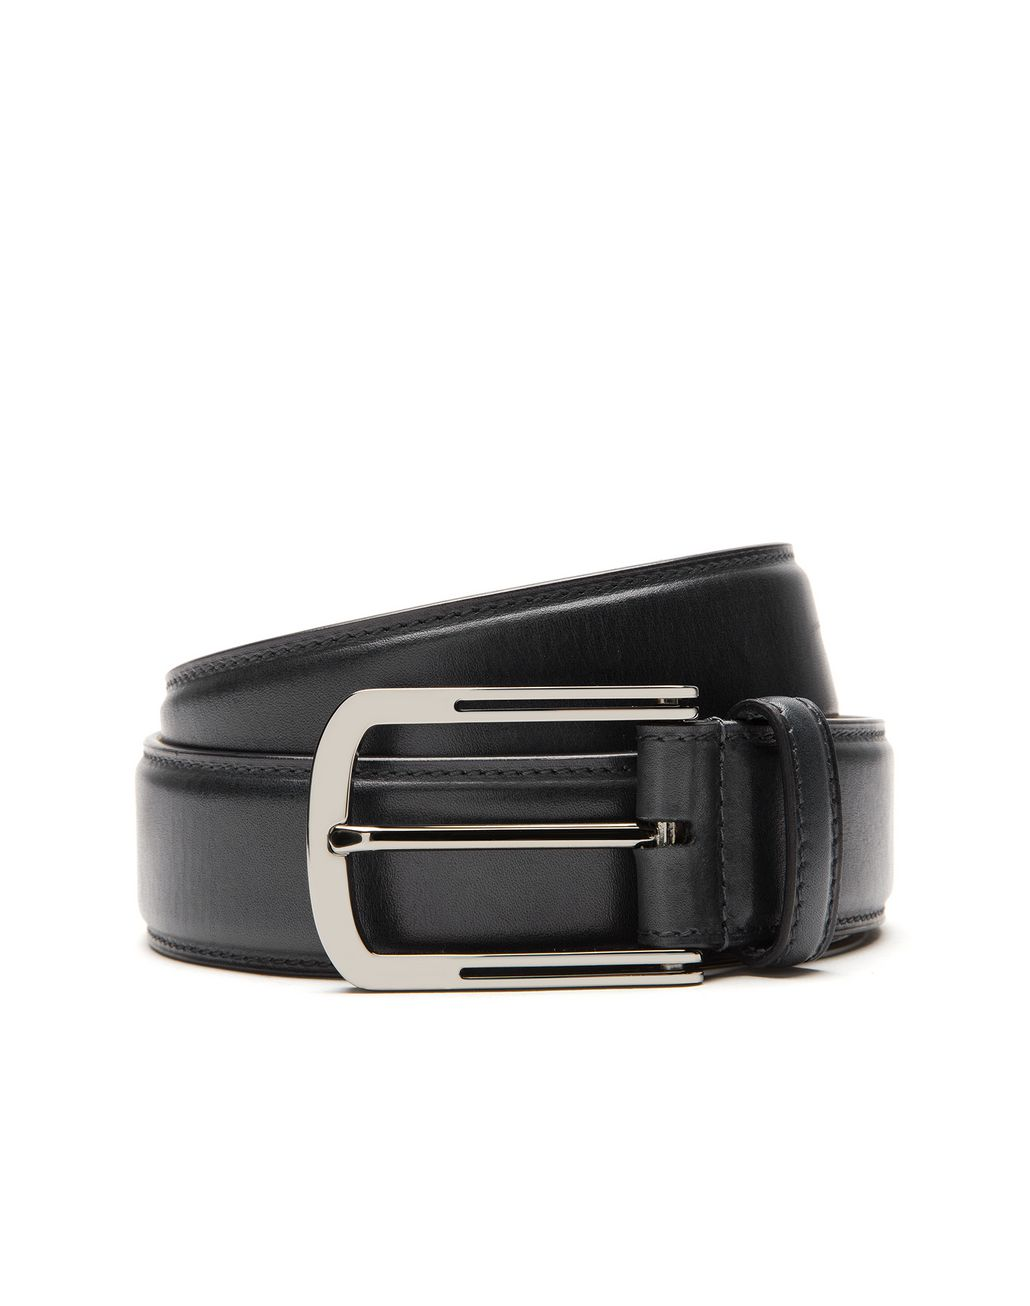 BRIONI Black Belt in Calfskin Leather Belt U r